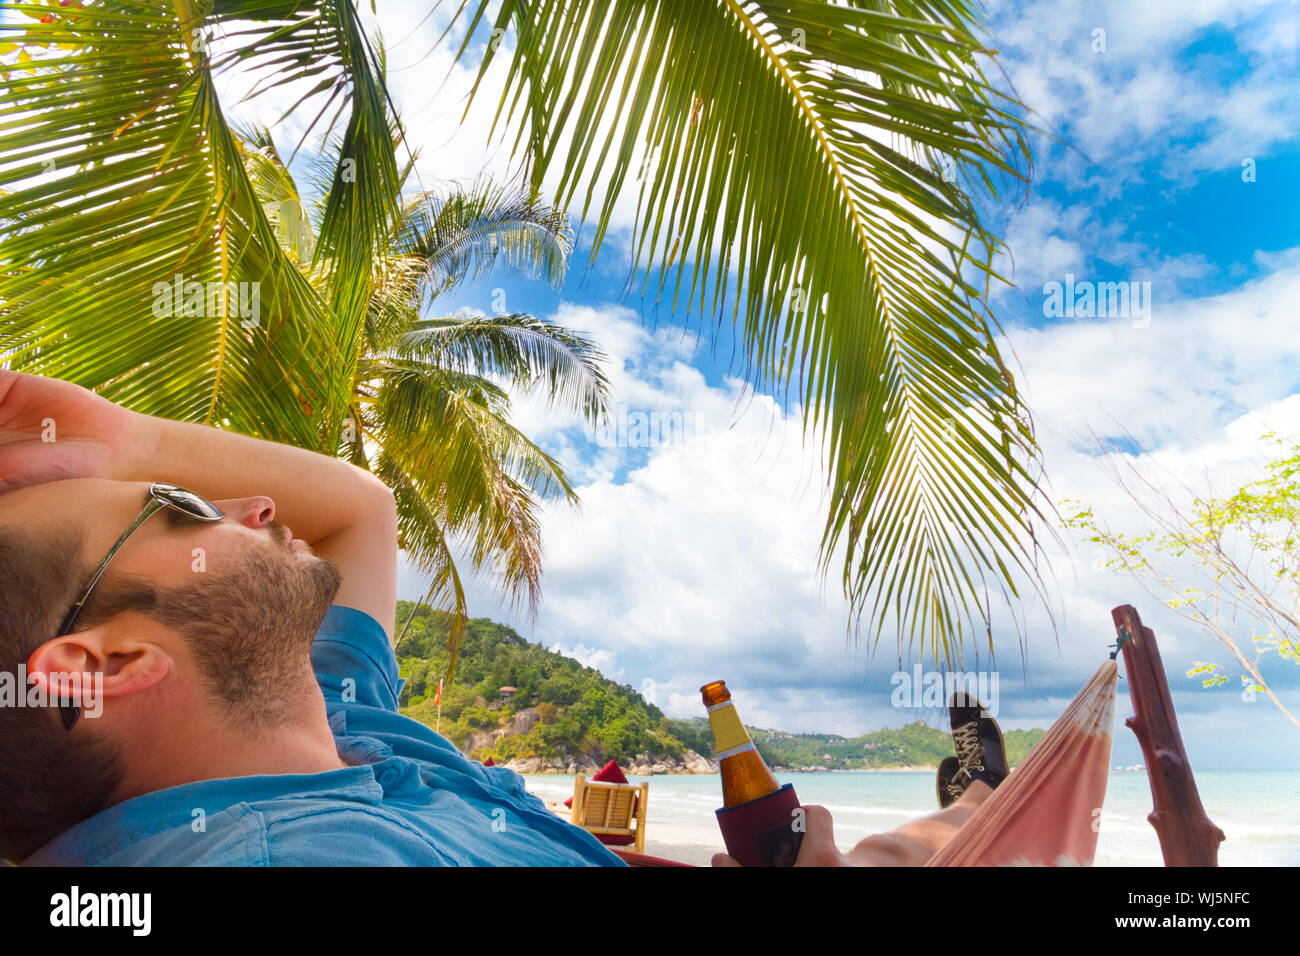 Man Relaxing On A Tropical Beach With A Bottle Of Beer In His Hand Stock Photo Alamy